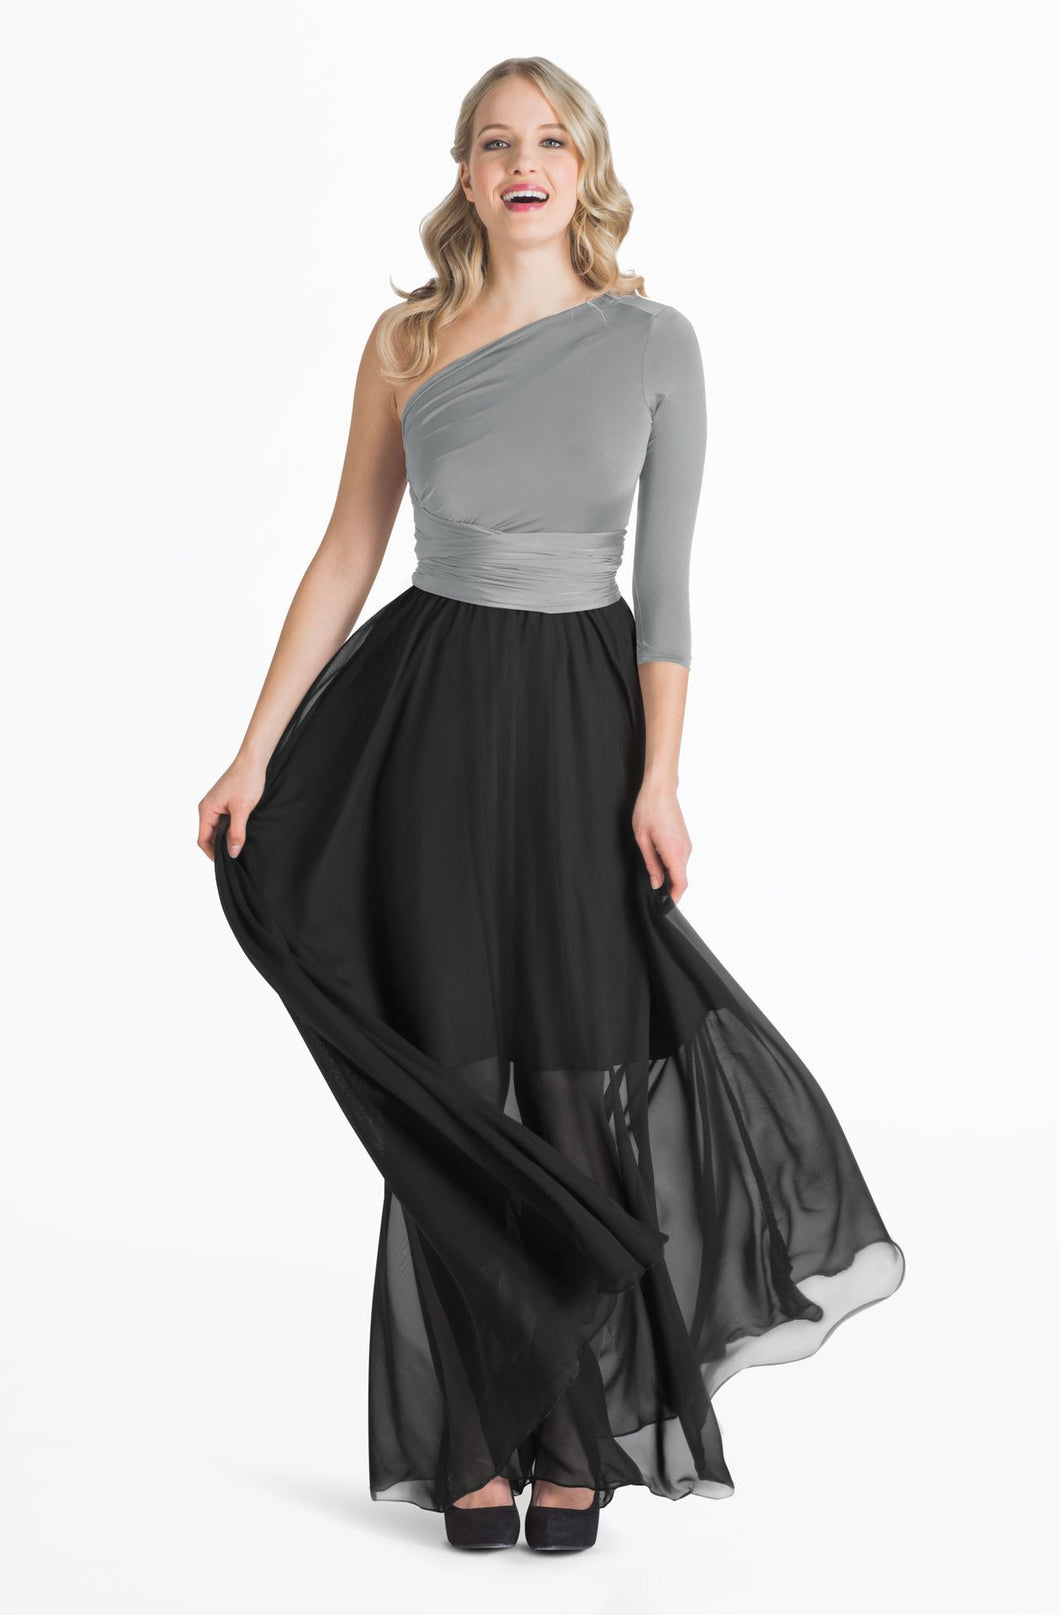 Maxi Overlay in Black - Eleganz n Grace - The Style Shoppe